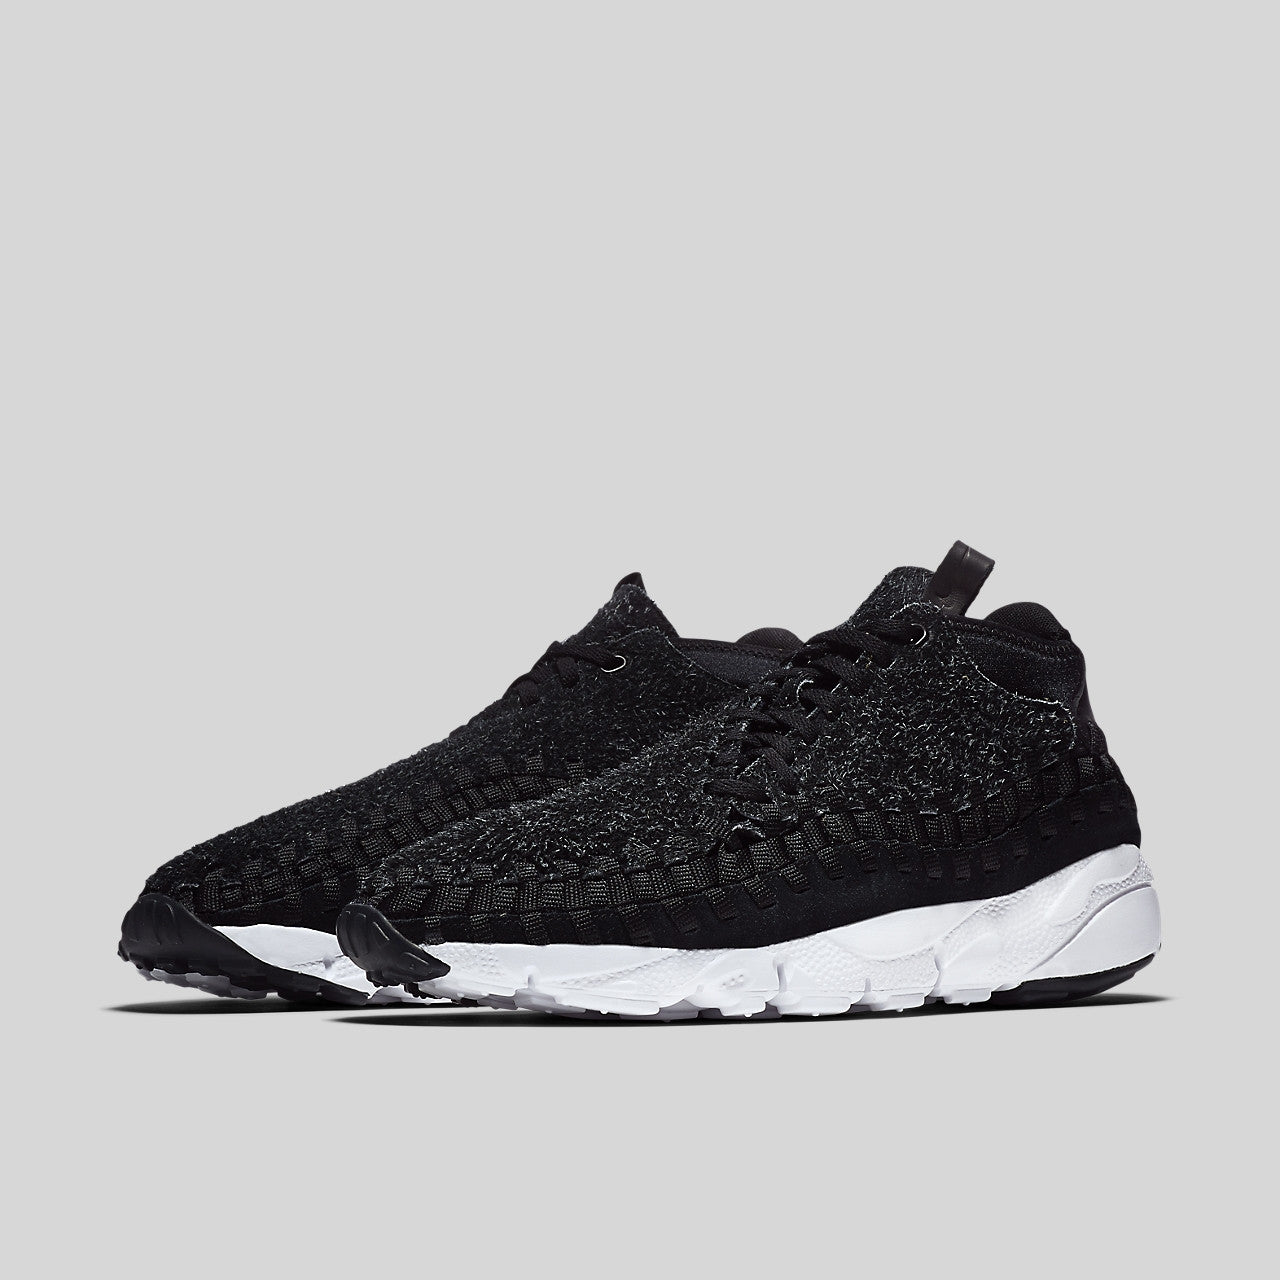 new arrival 56745 a27e2 Nike Air Footscape Woven Chukka QS Hairy Suede Black Anthracite White